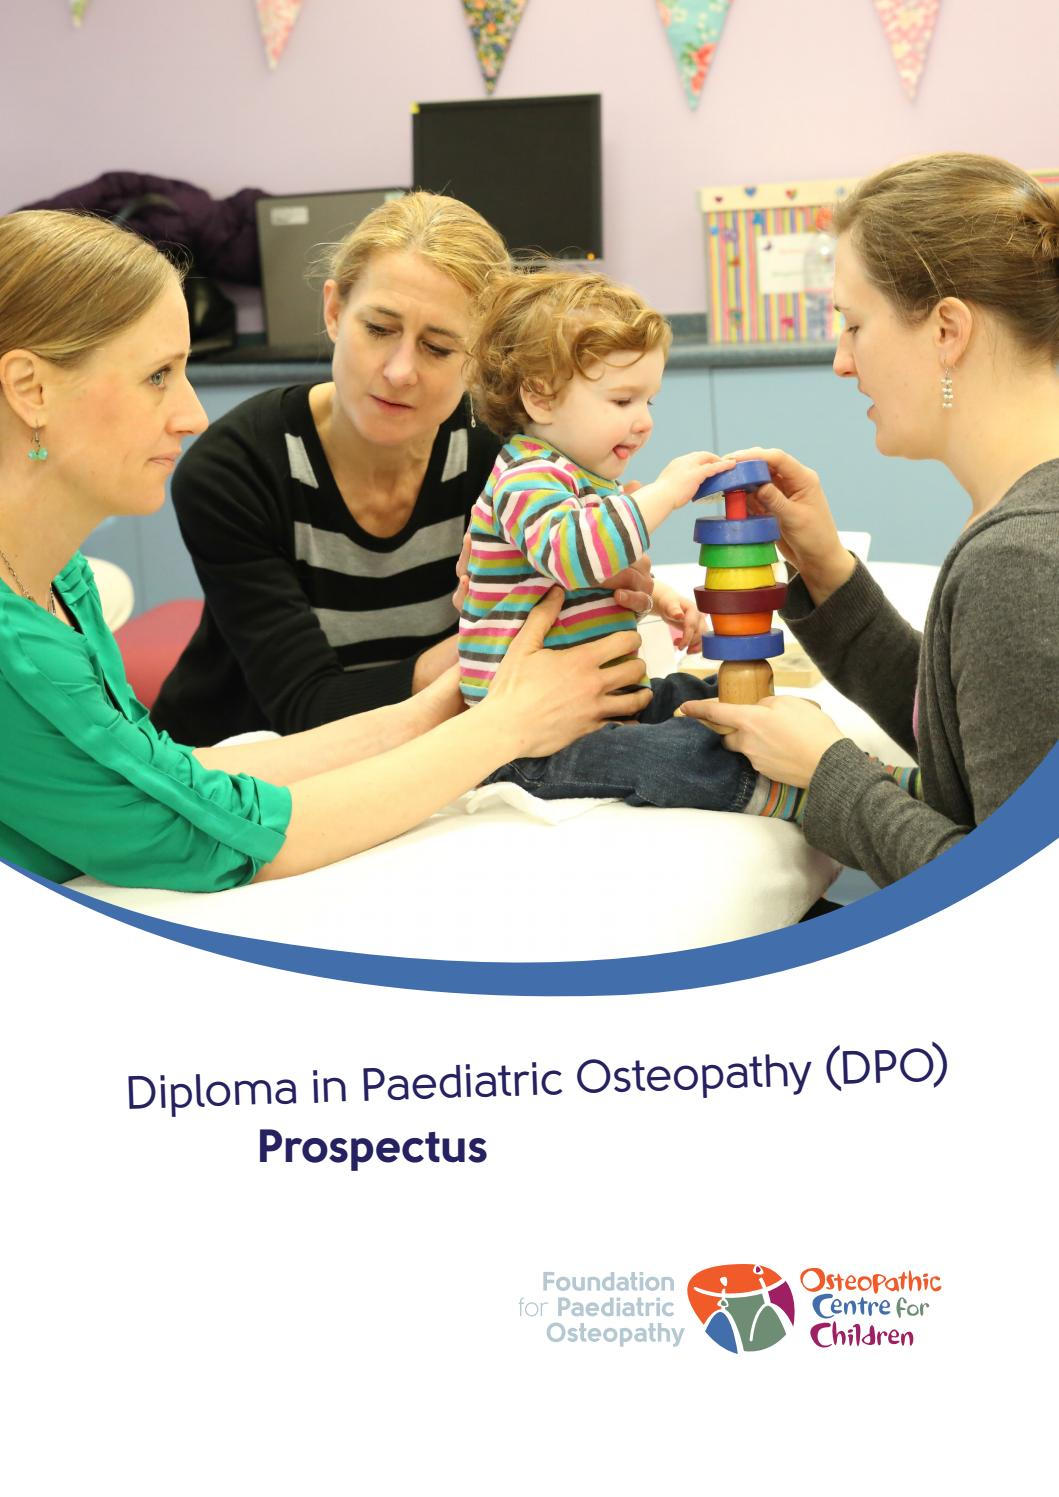 Diploma in Paediatric Osteopathy (DPO) Prospectus by Mascot